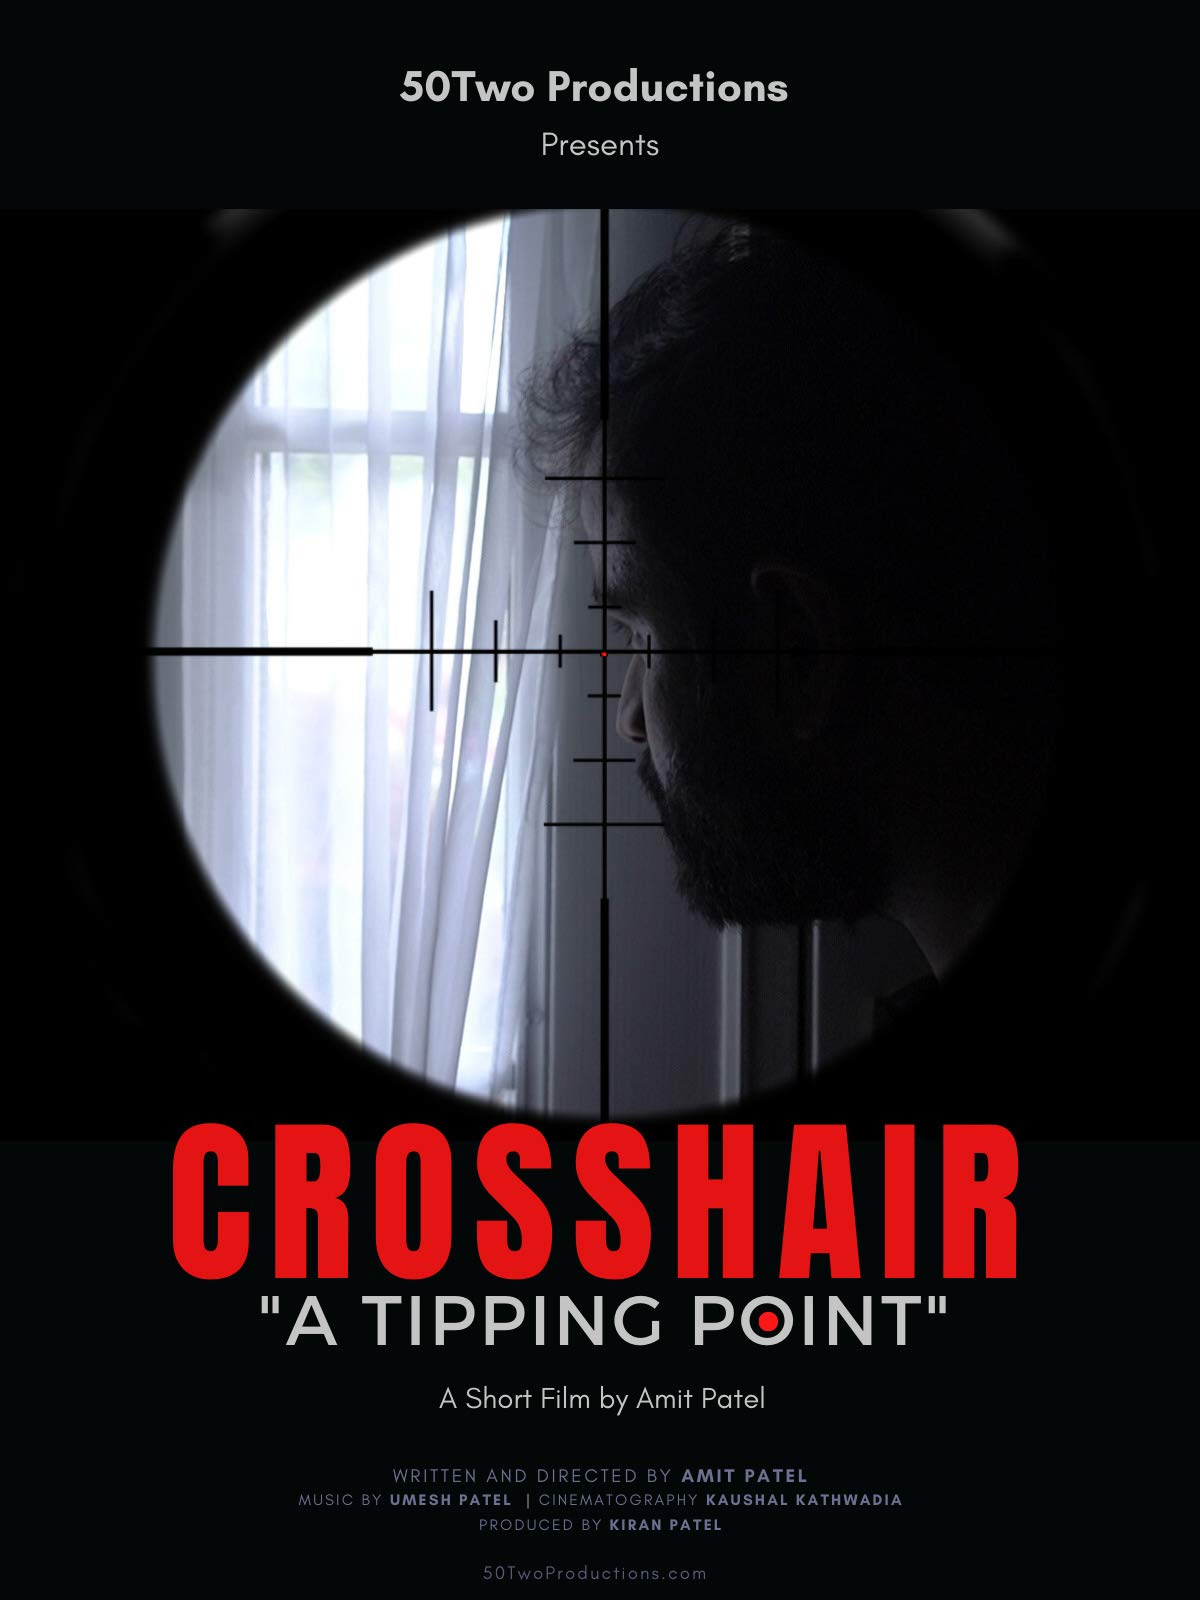 Crosshair: A Tipping Point